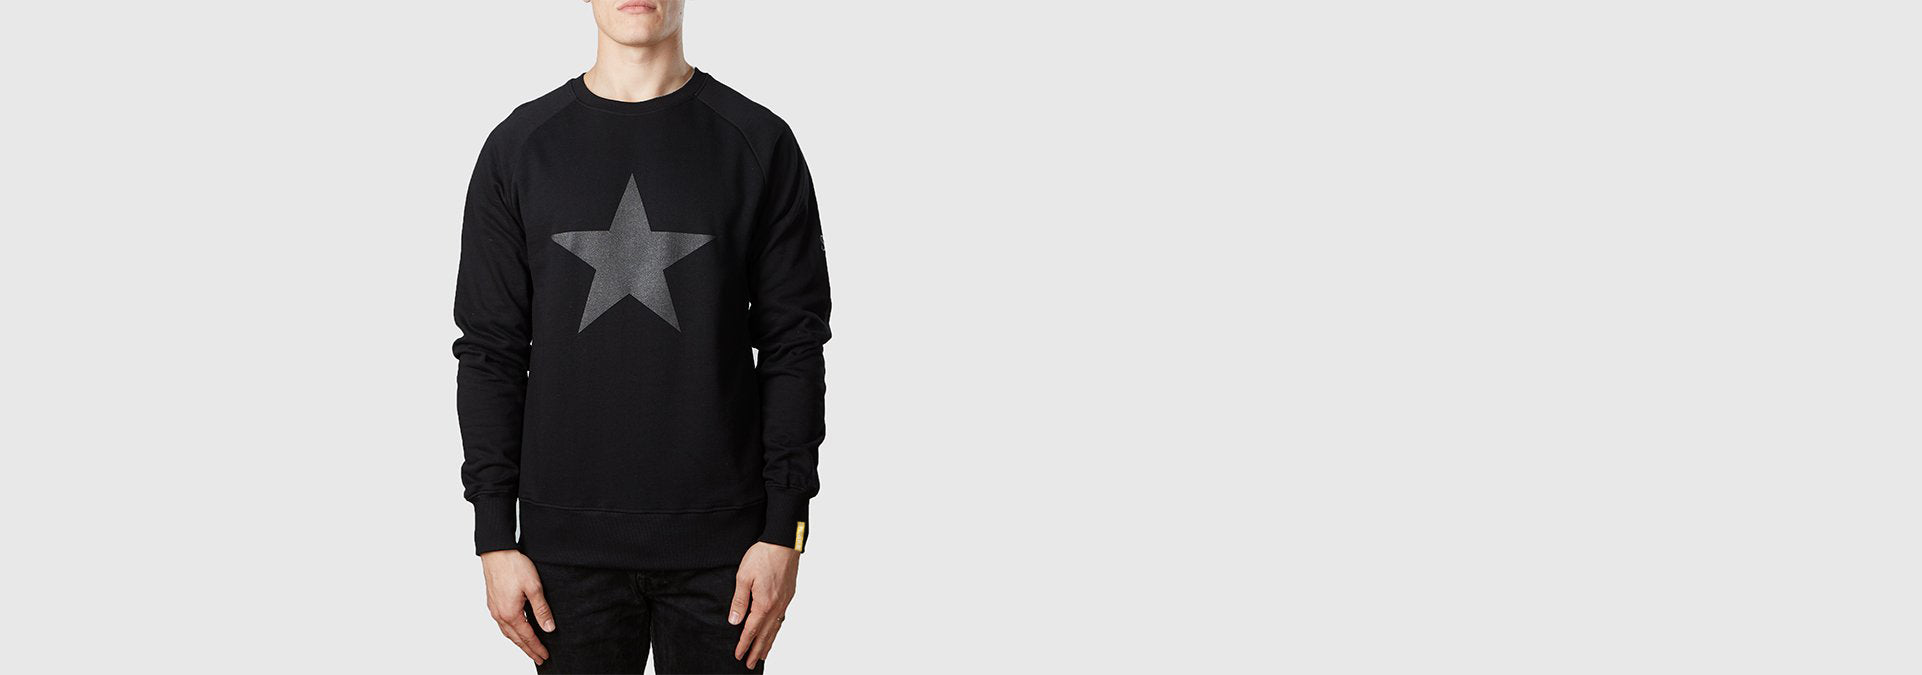 Graphite Star Organic Cotton Sweat Black